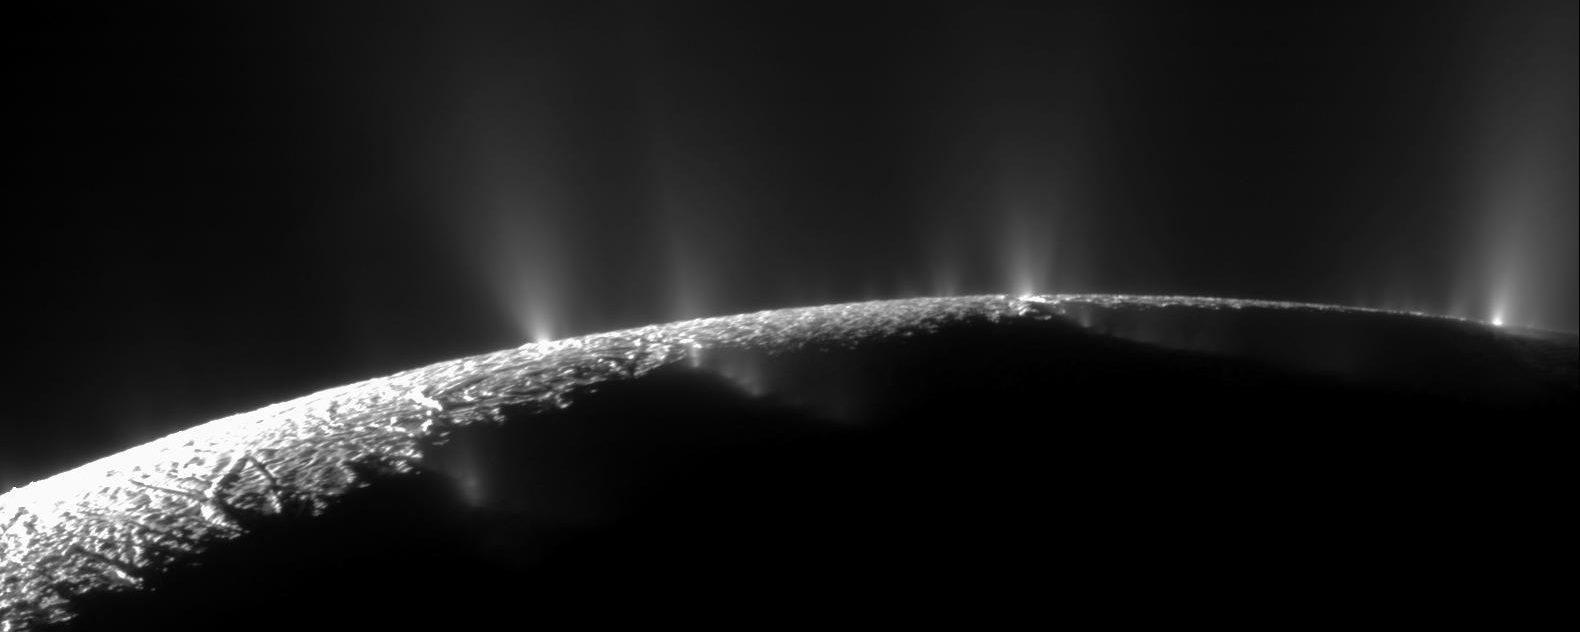 Cassini's view of Enceladus' plumes